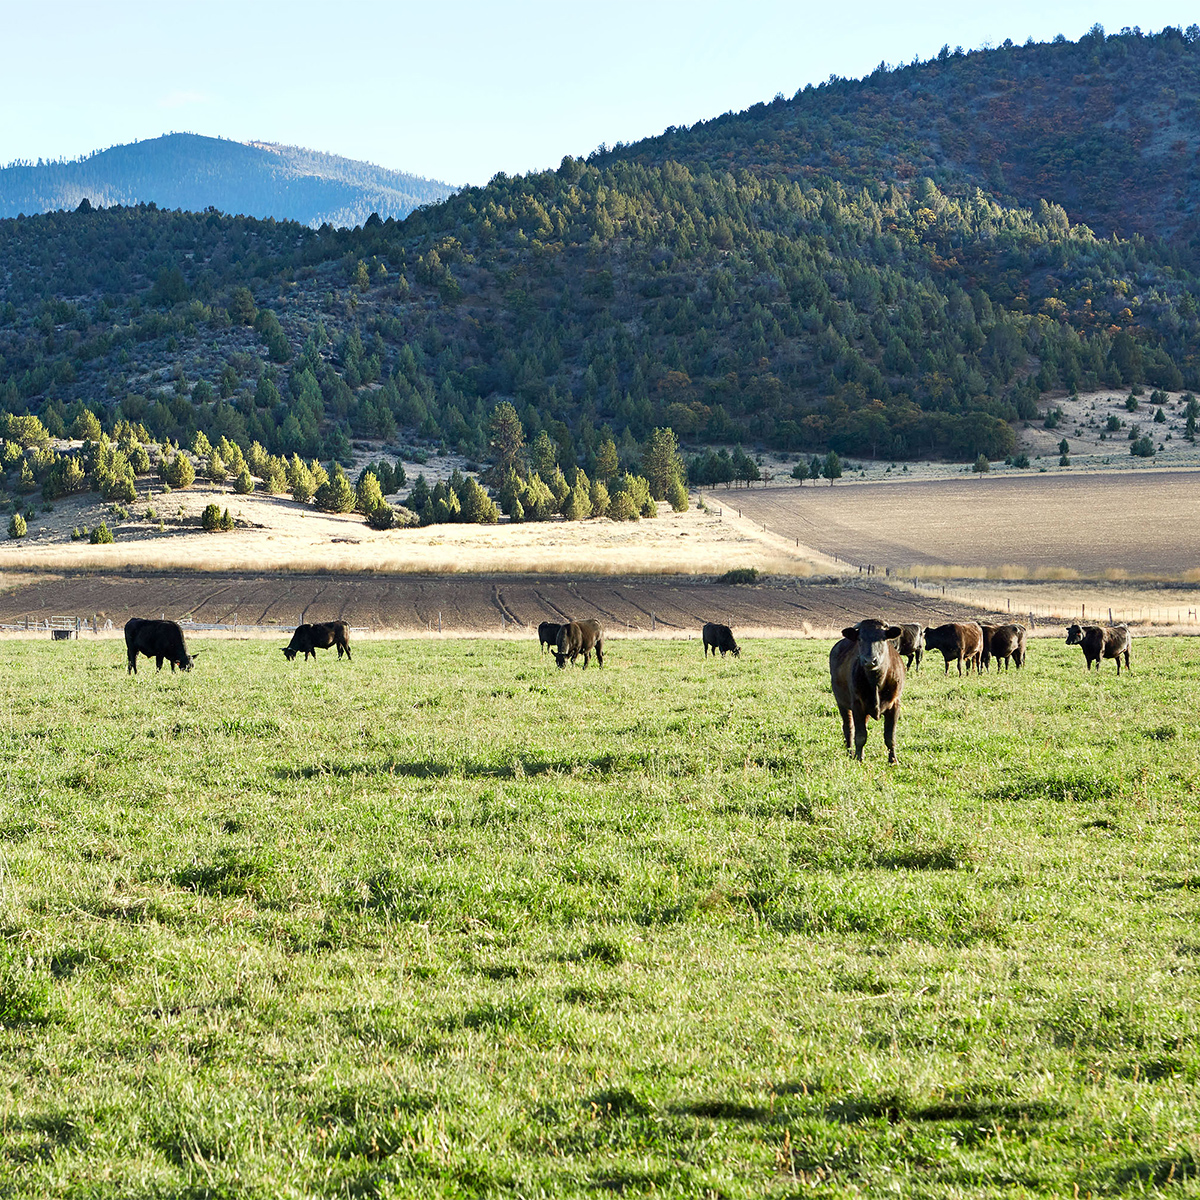 angus hereford wagyu cattle on ranch